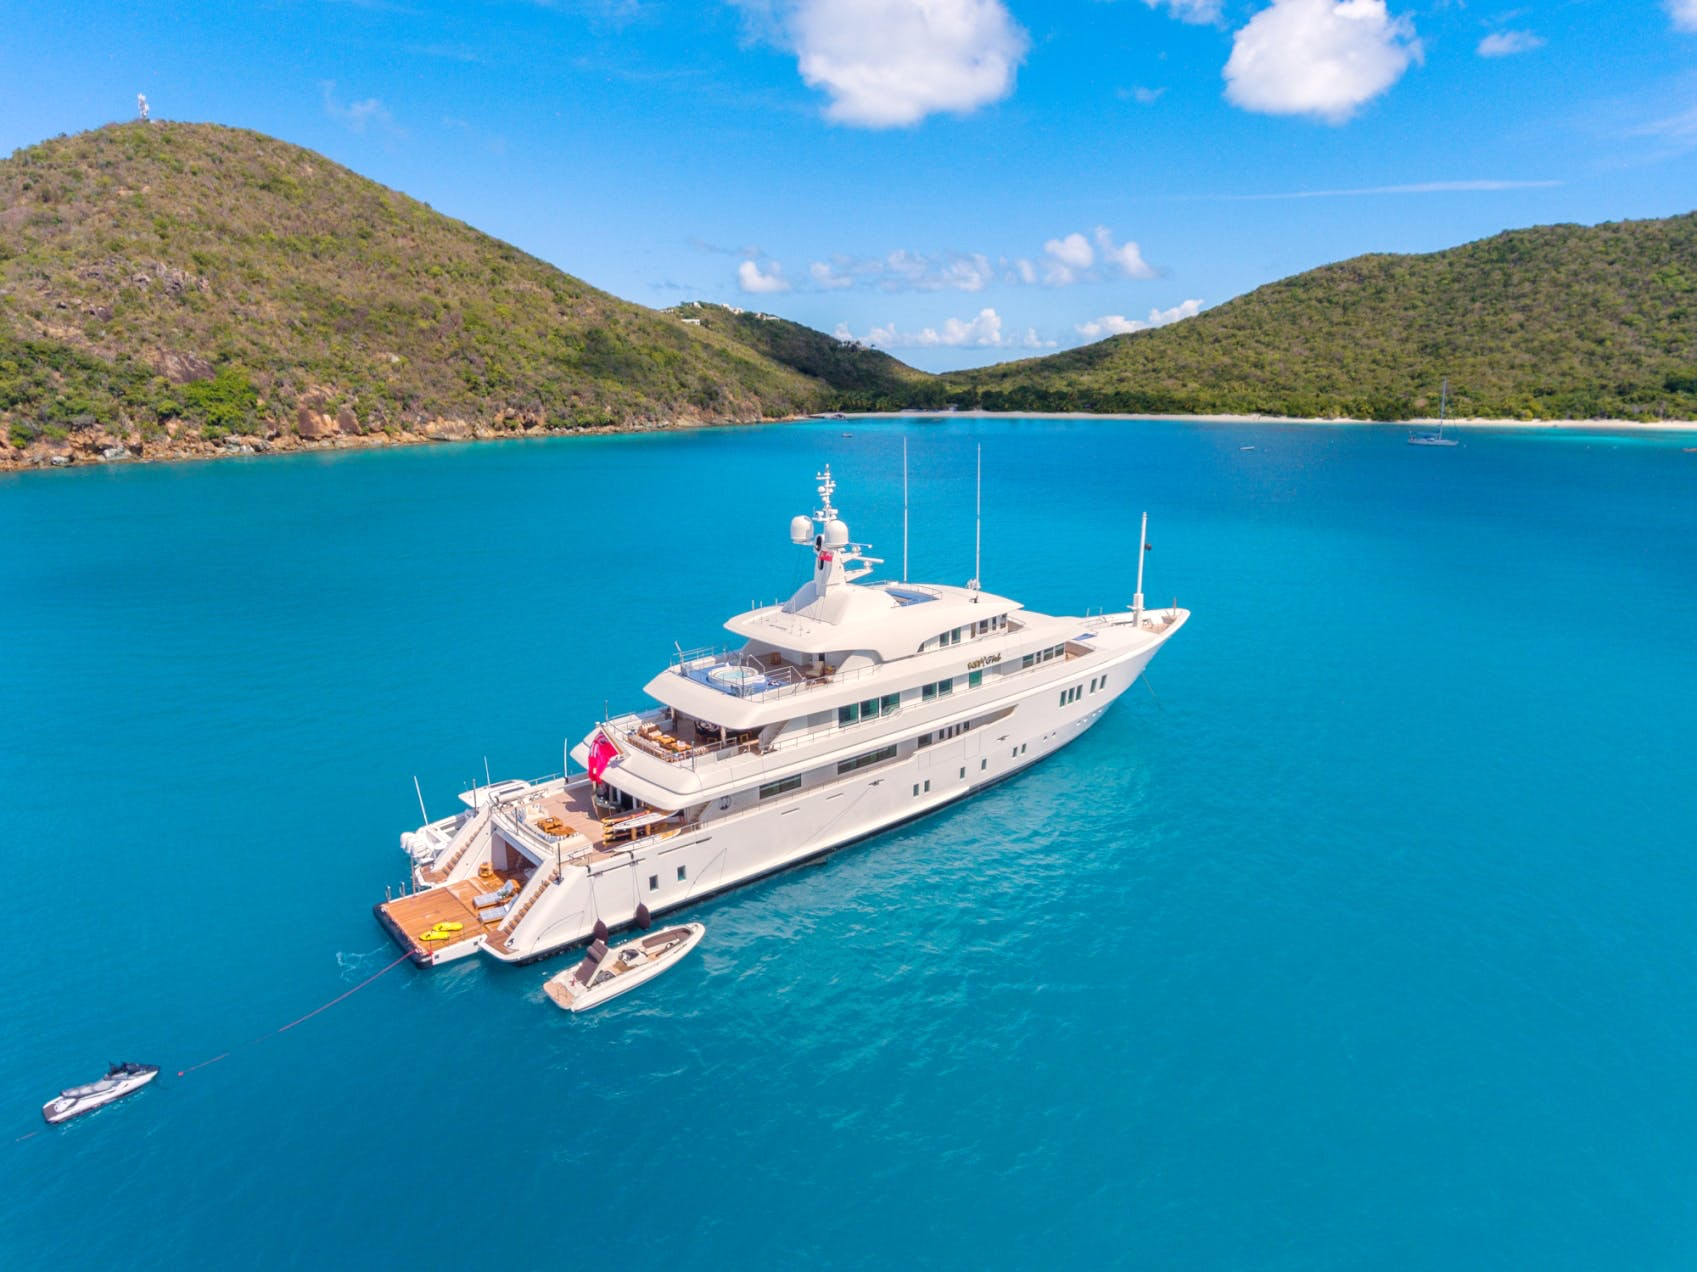 Icon Charter Yacht Party Girl Profile in the Caribbean